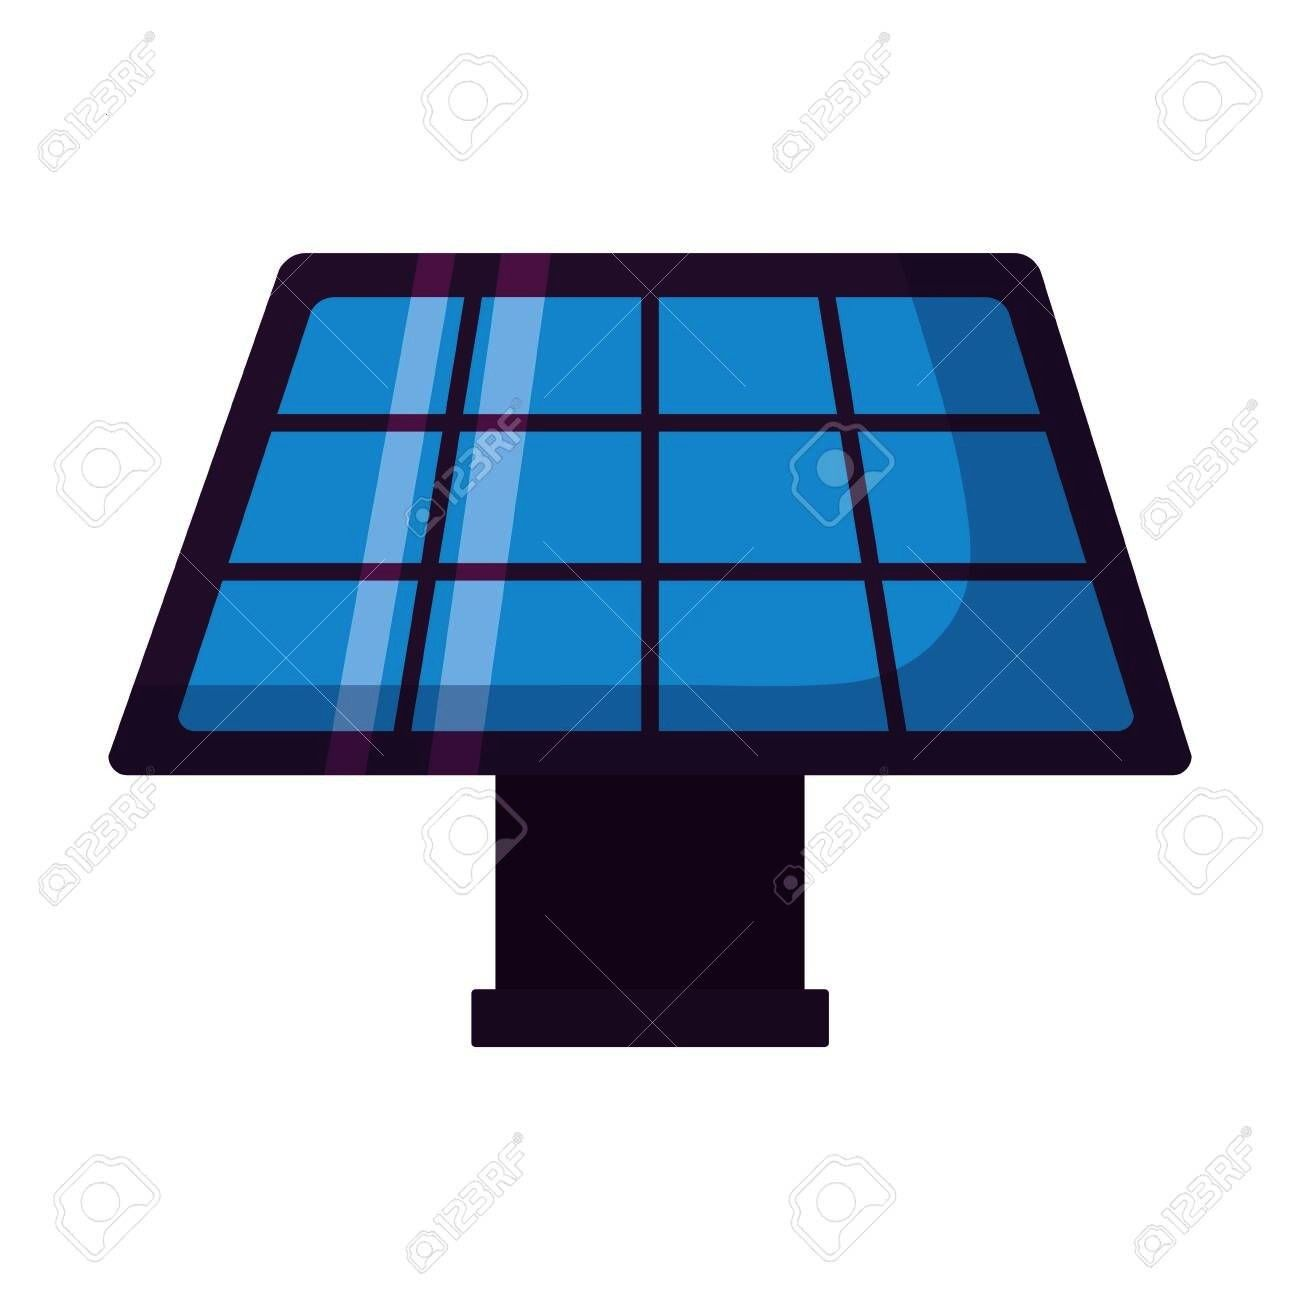 panel energy on white background vector illustration Illustration solar panel energy on white background vector illustration Illustration  Been thinking about updating yo...